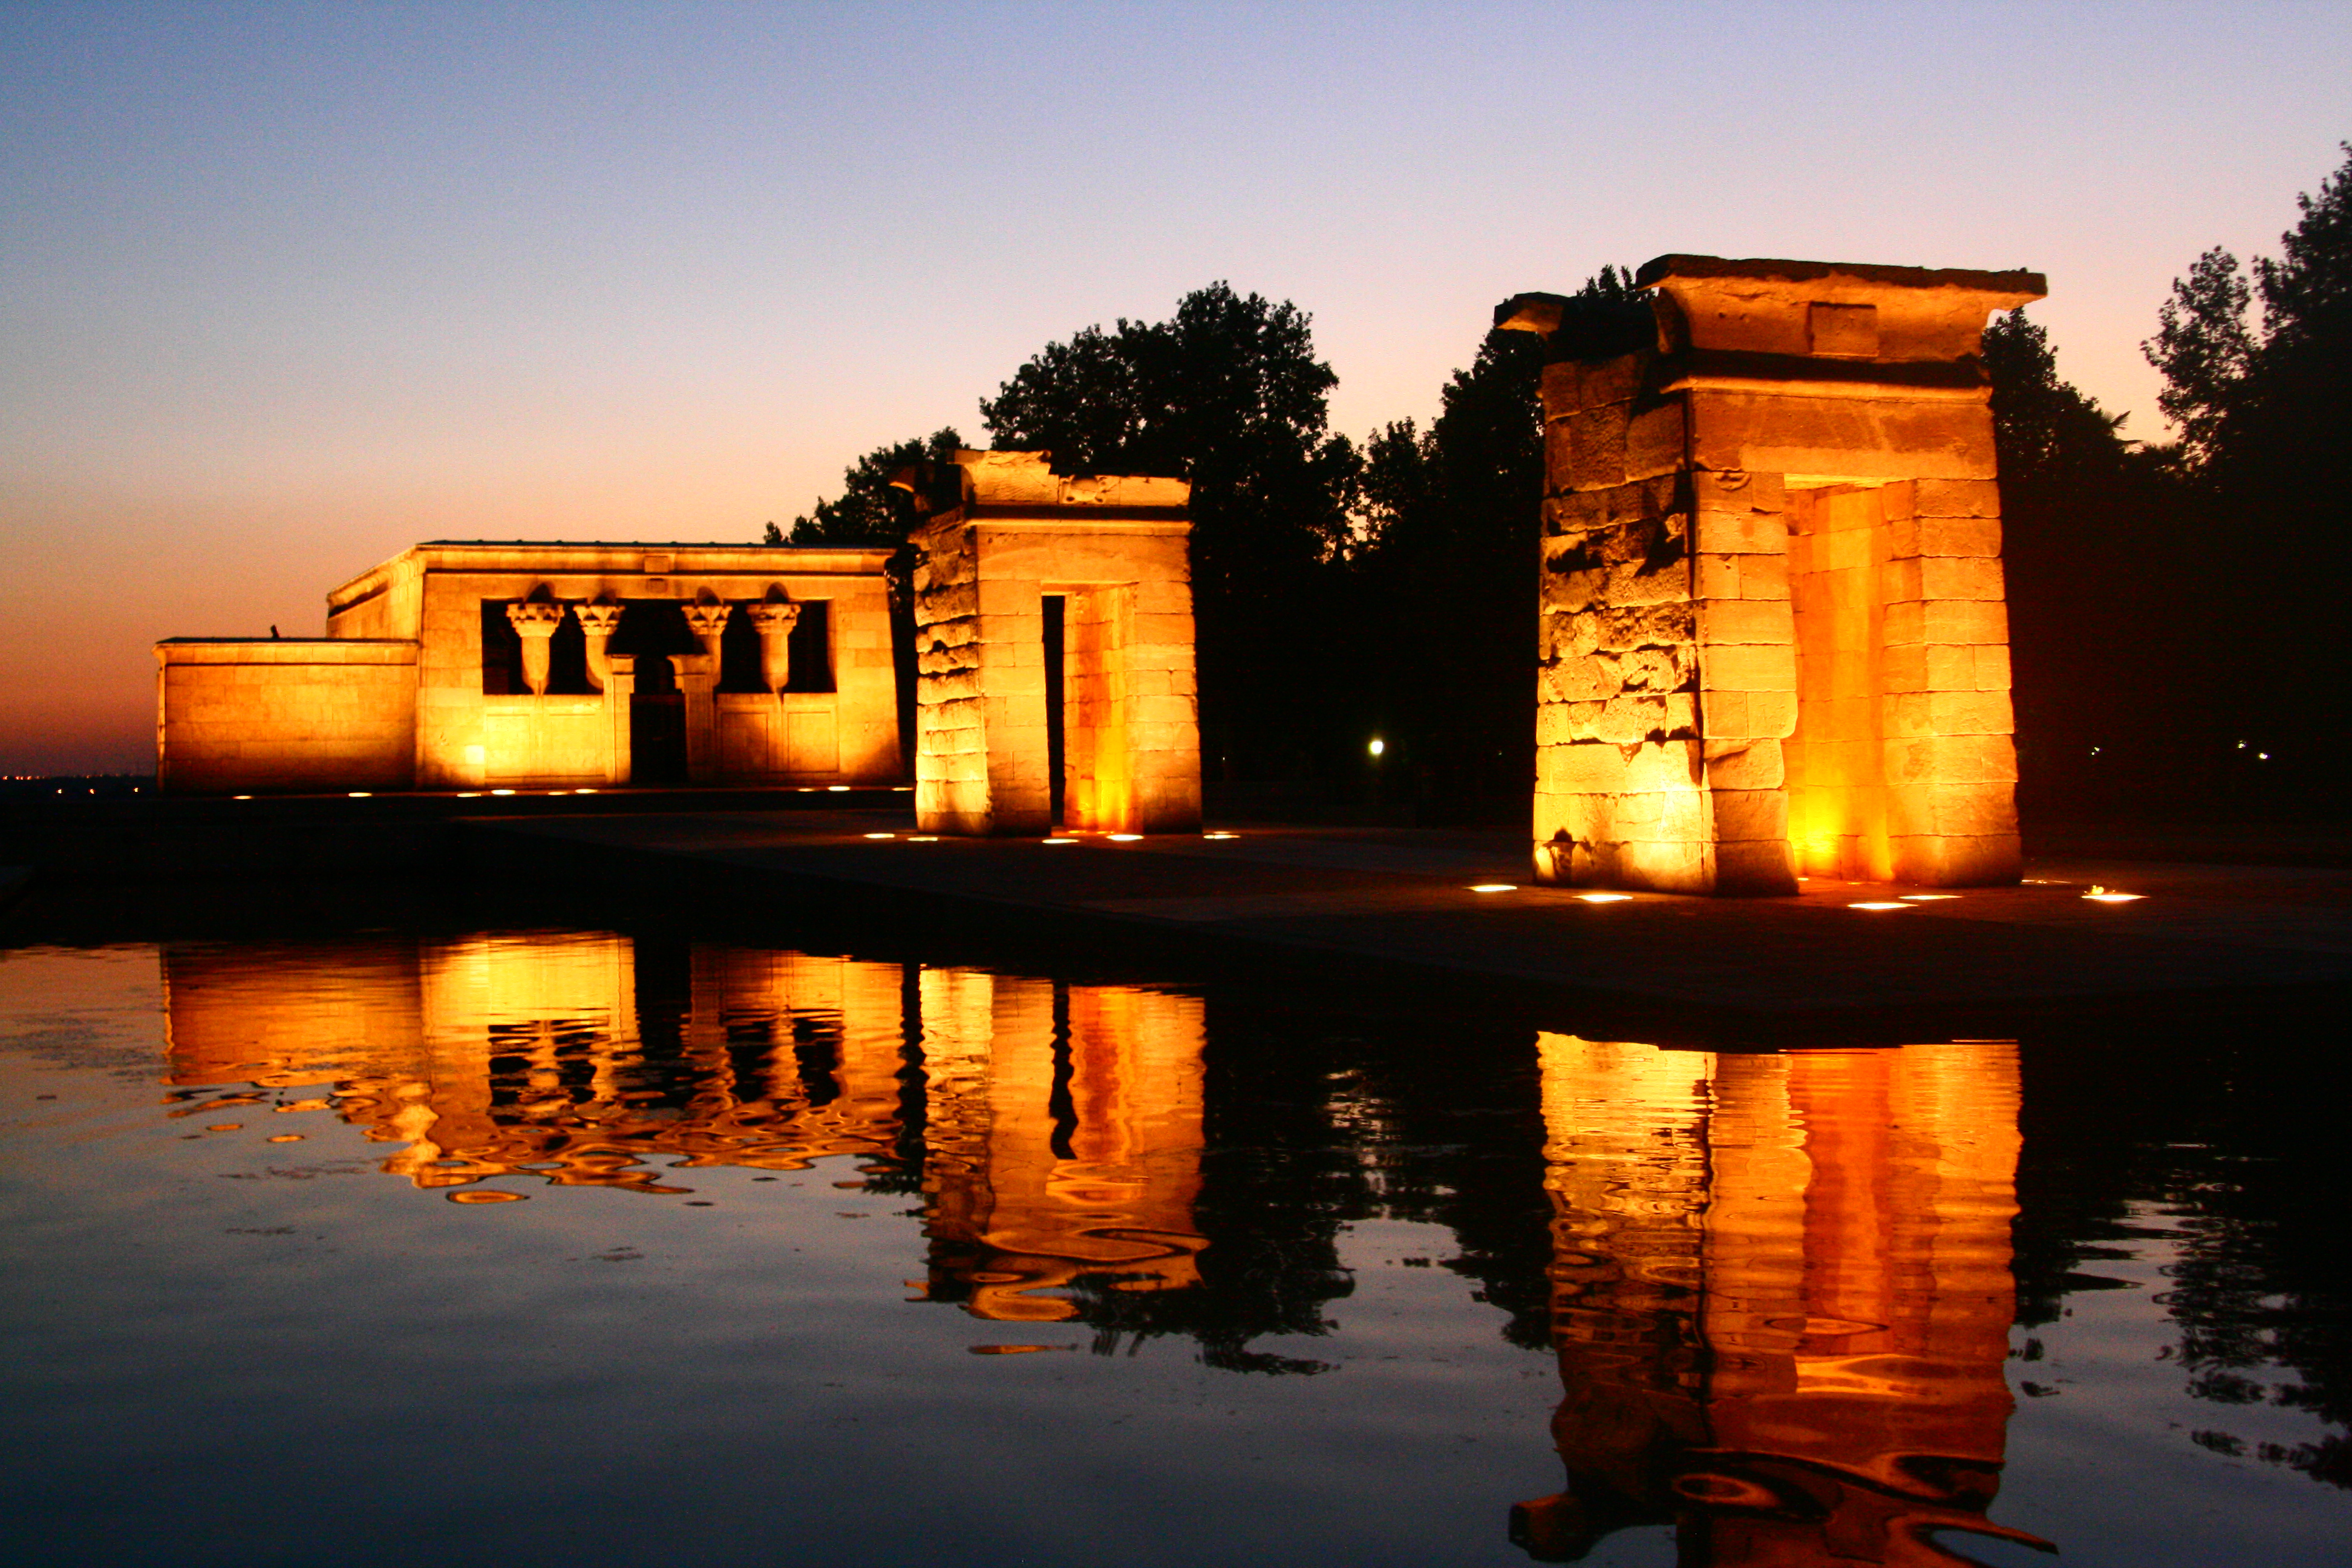 File:Templo de Debod (Madrid) 19.jpg - Wikimedia Commons